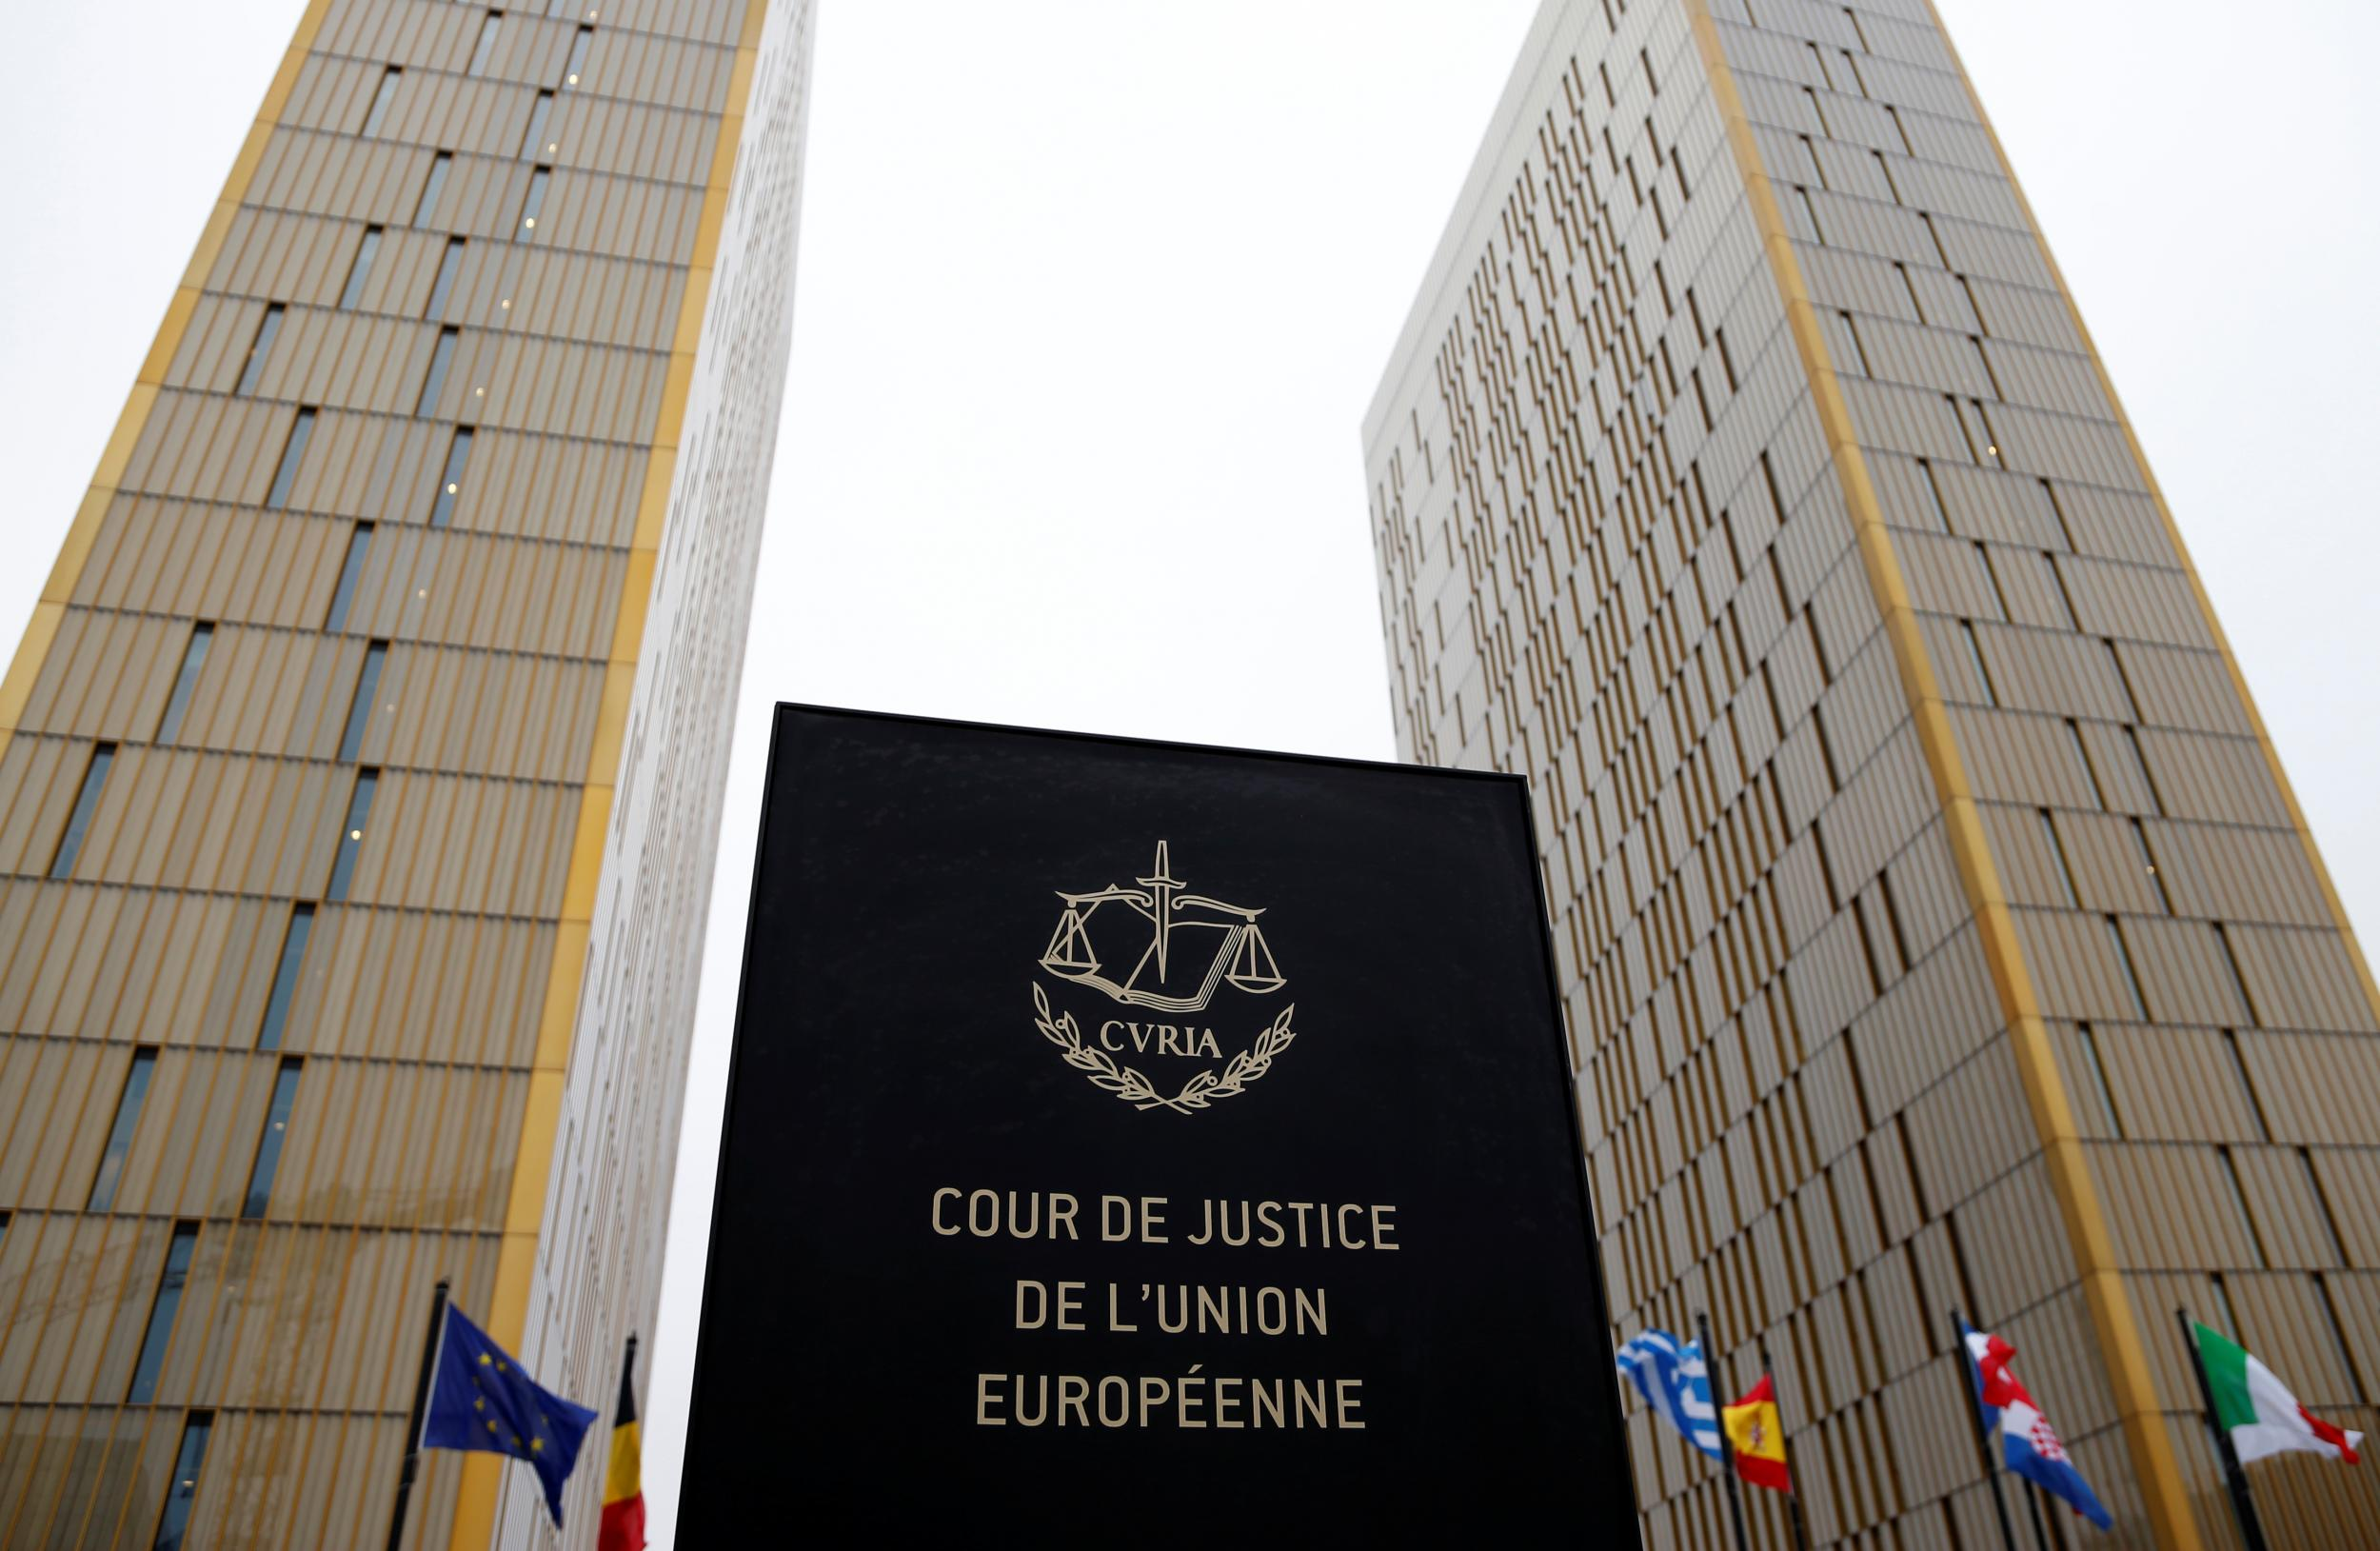 Brexit 'could be delayed' if any aspect of negotiations is referred to European Court of Justice, experts warn